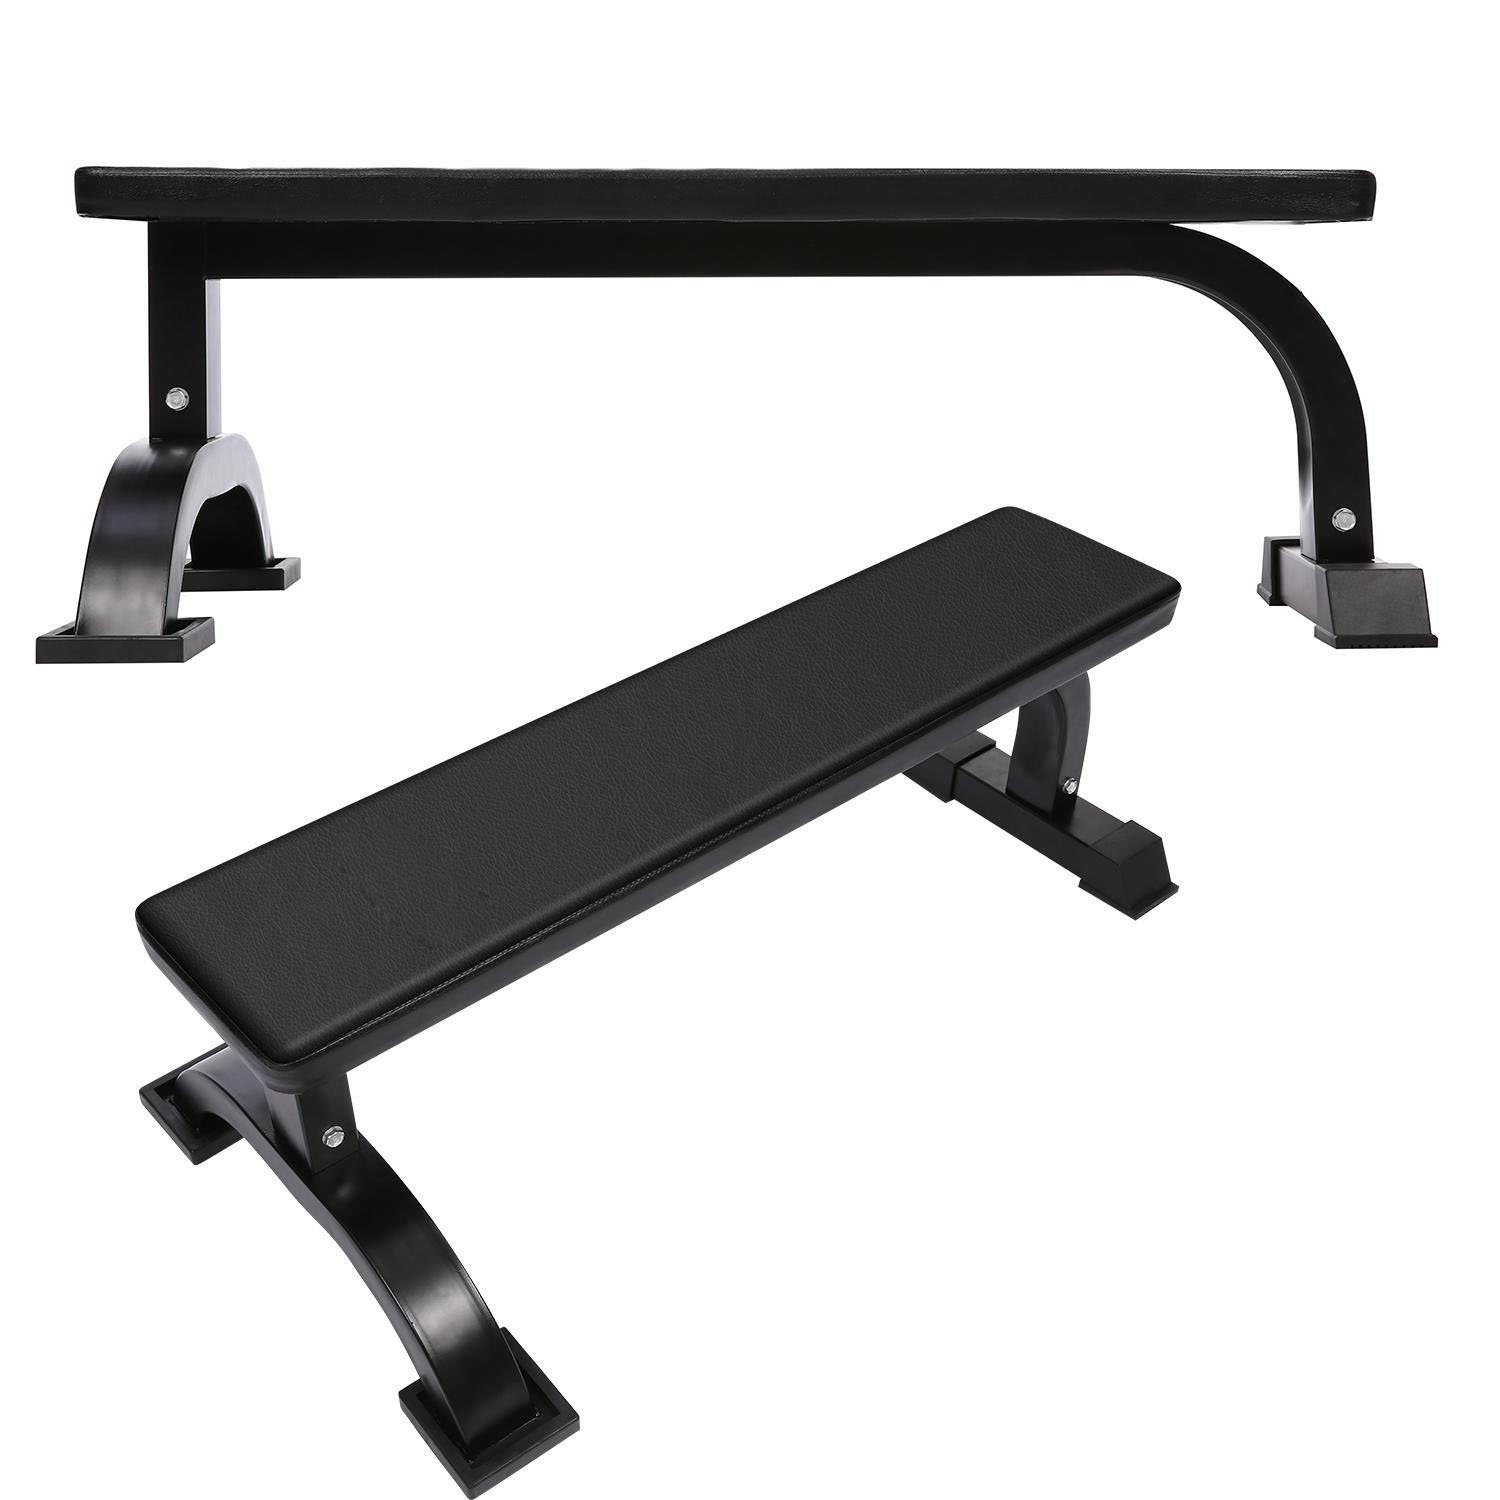 Weight-lifting Bench Extra Strength Heavy Duty Equipment Padded Flat Weight Lifting Bench by Cosway